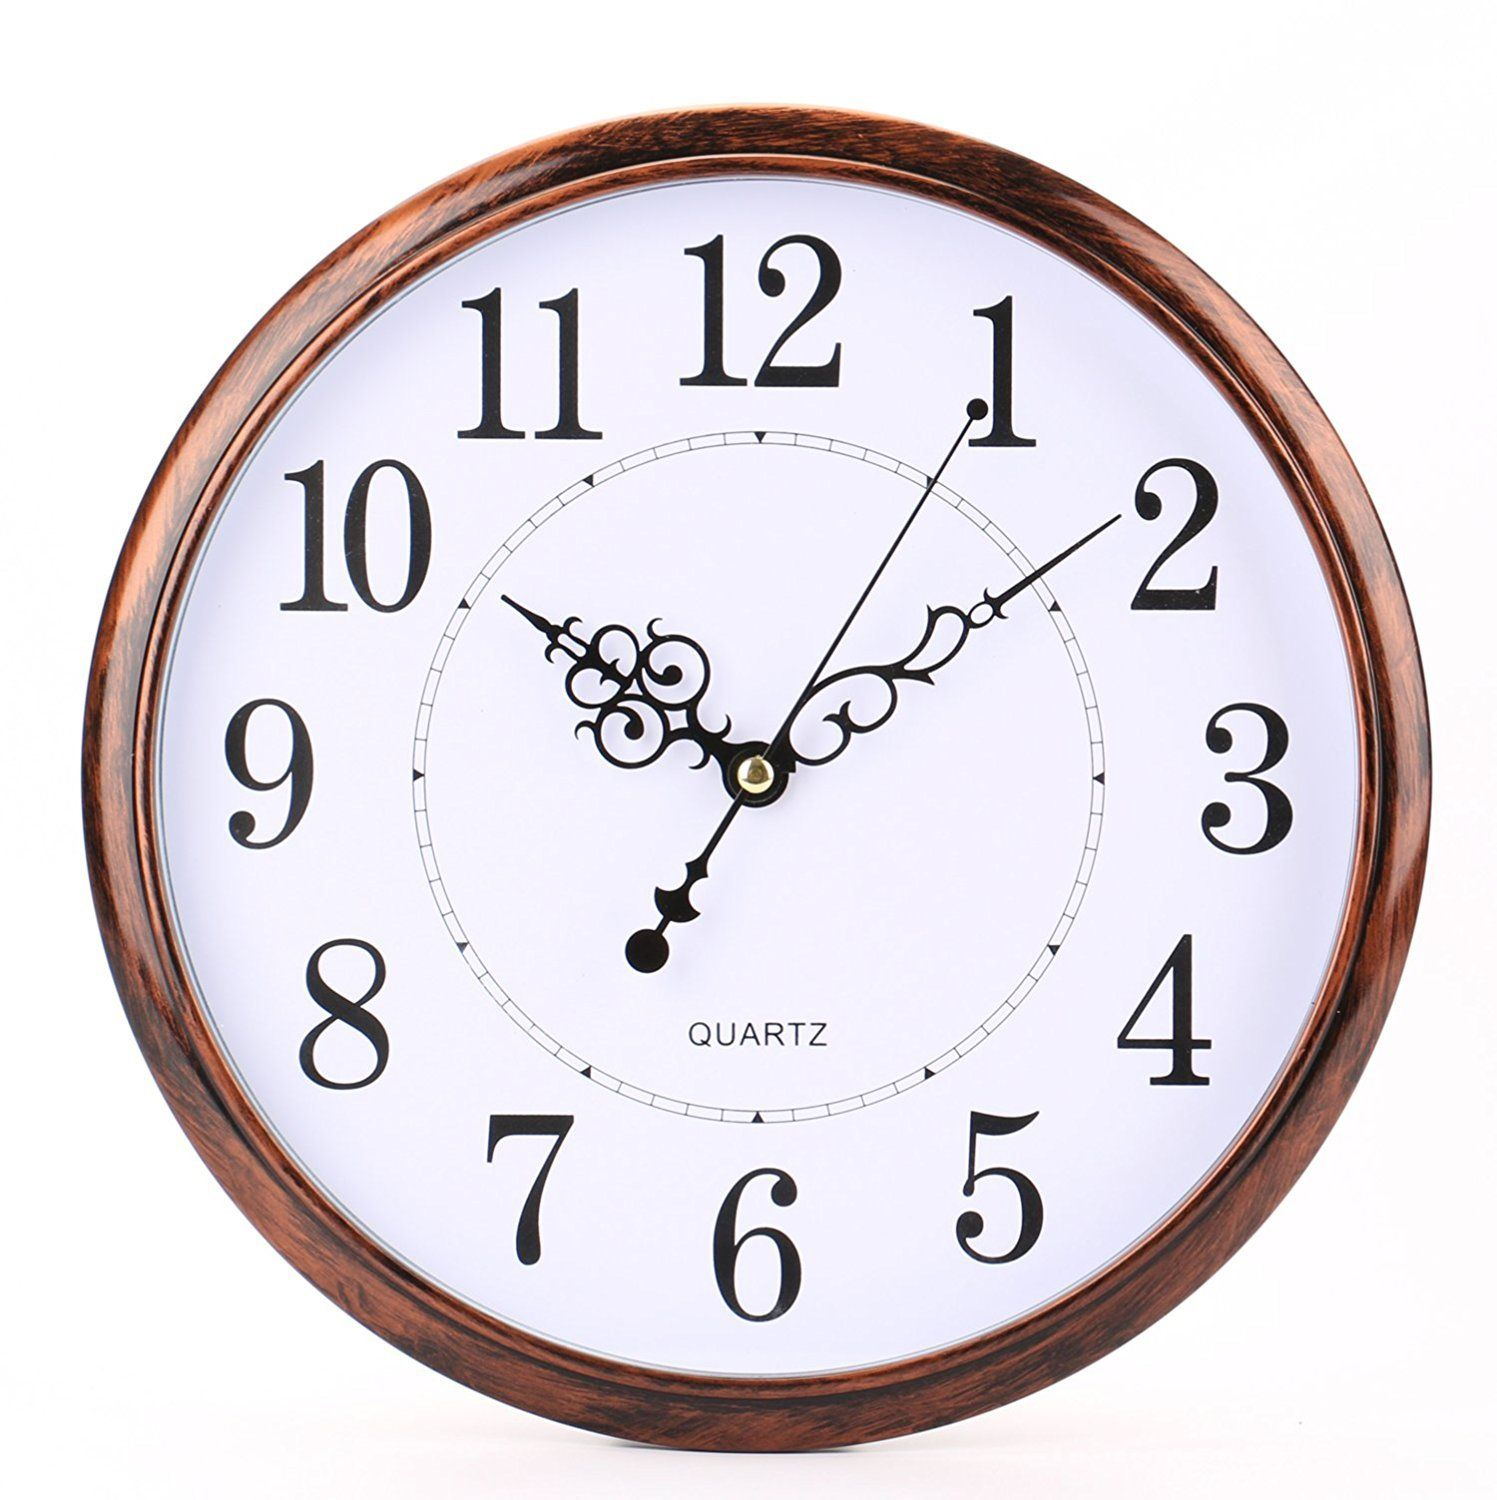 Bekith 12 Inch Retro Clock Non Ticking Silent Quality Quartz Decorative Home Office School Wall Clock Lavorist Retro Clock Retro Wall Clock Kitchen Wall Clocks